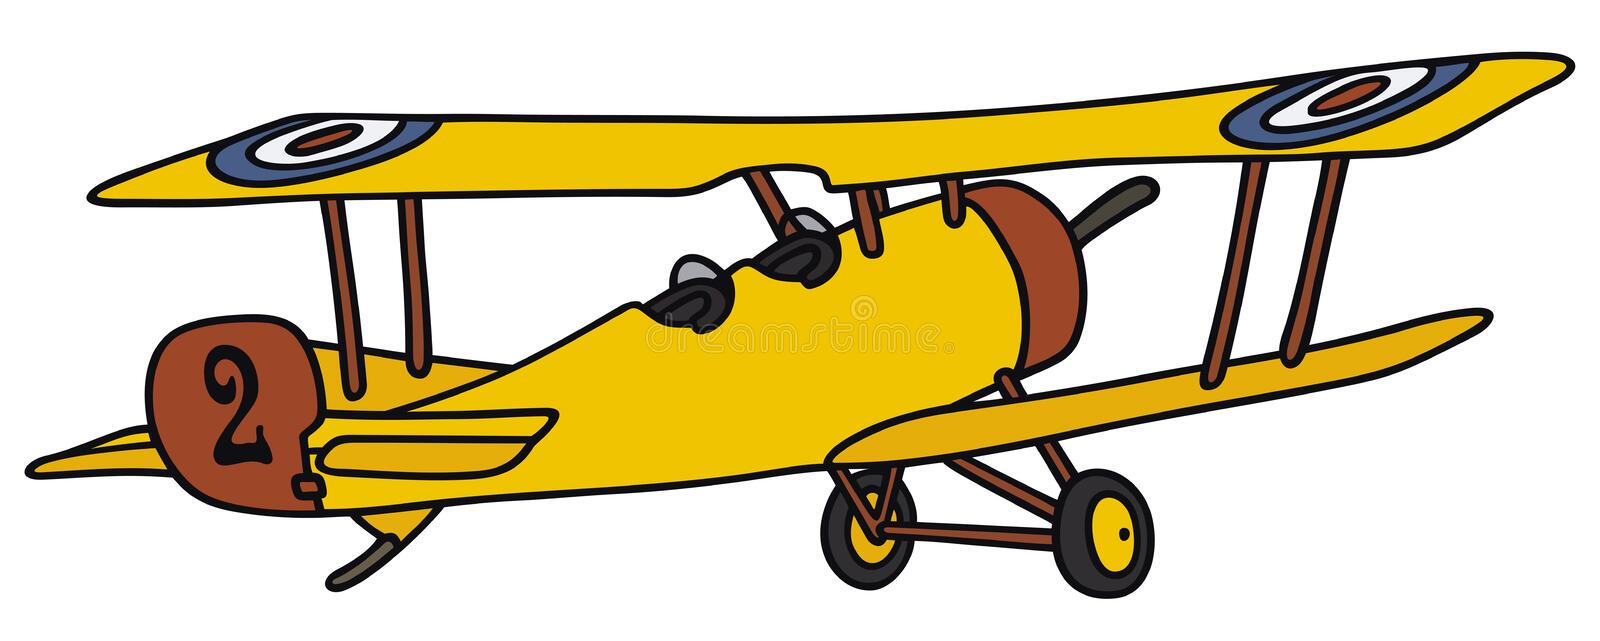 Vintage biplane. Hand drawing of a yellow vintage biplane - not a real model vector illustration